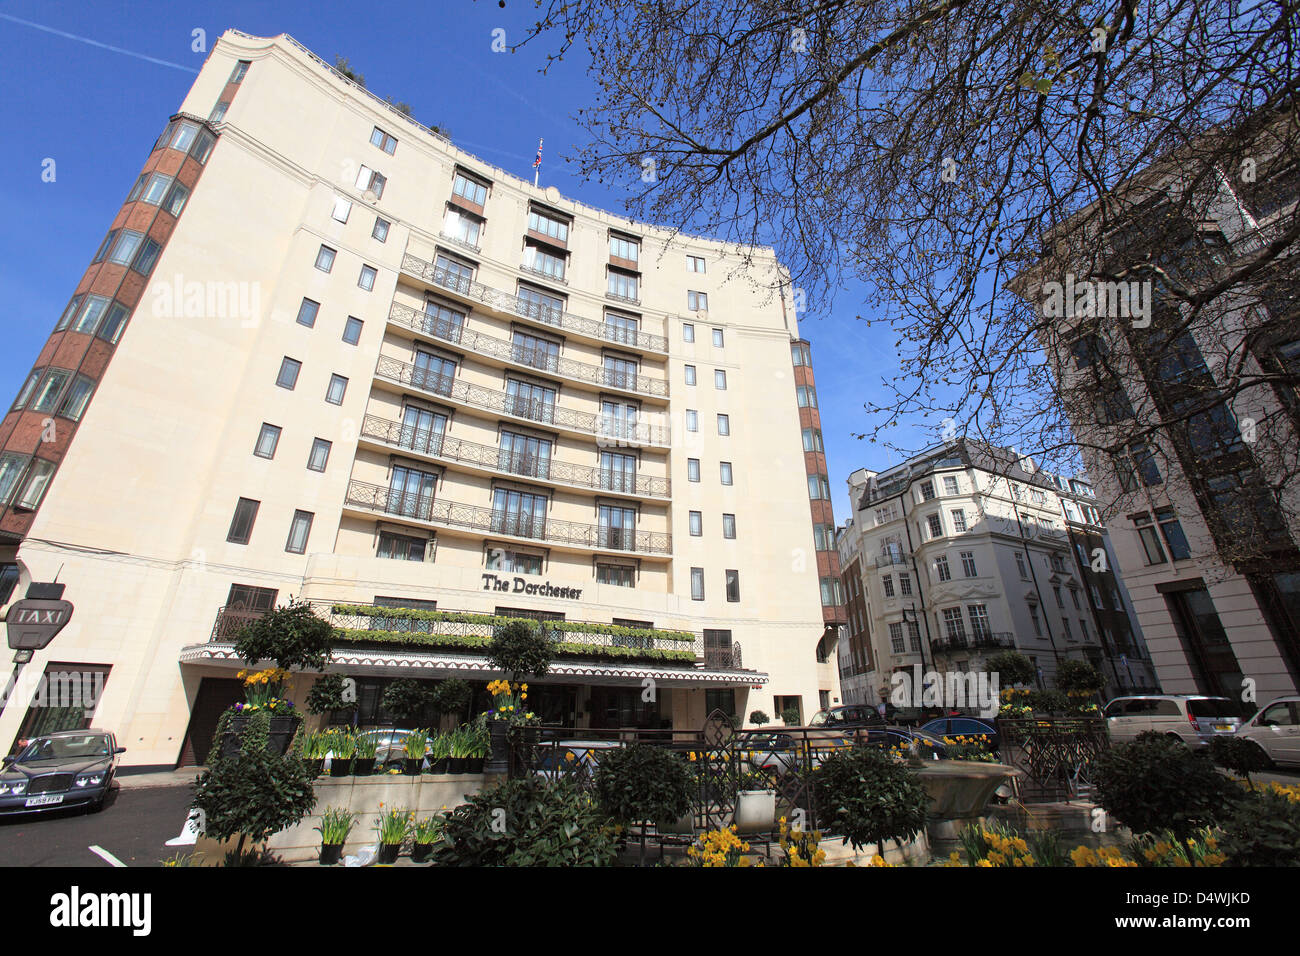 united kingdom west london park lane the dorchester hotel - Stock Image